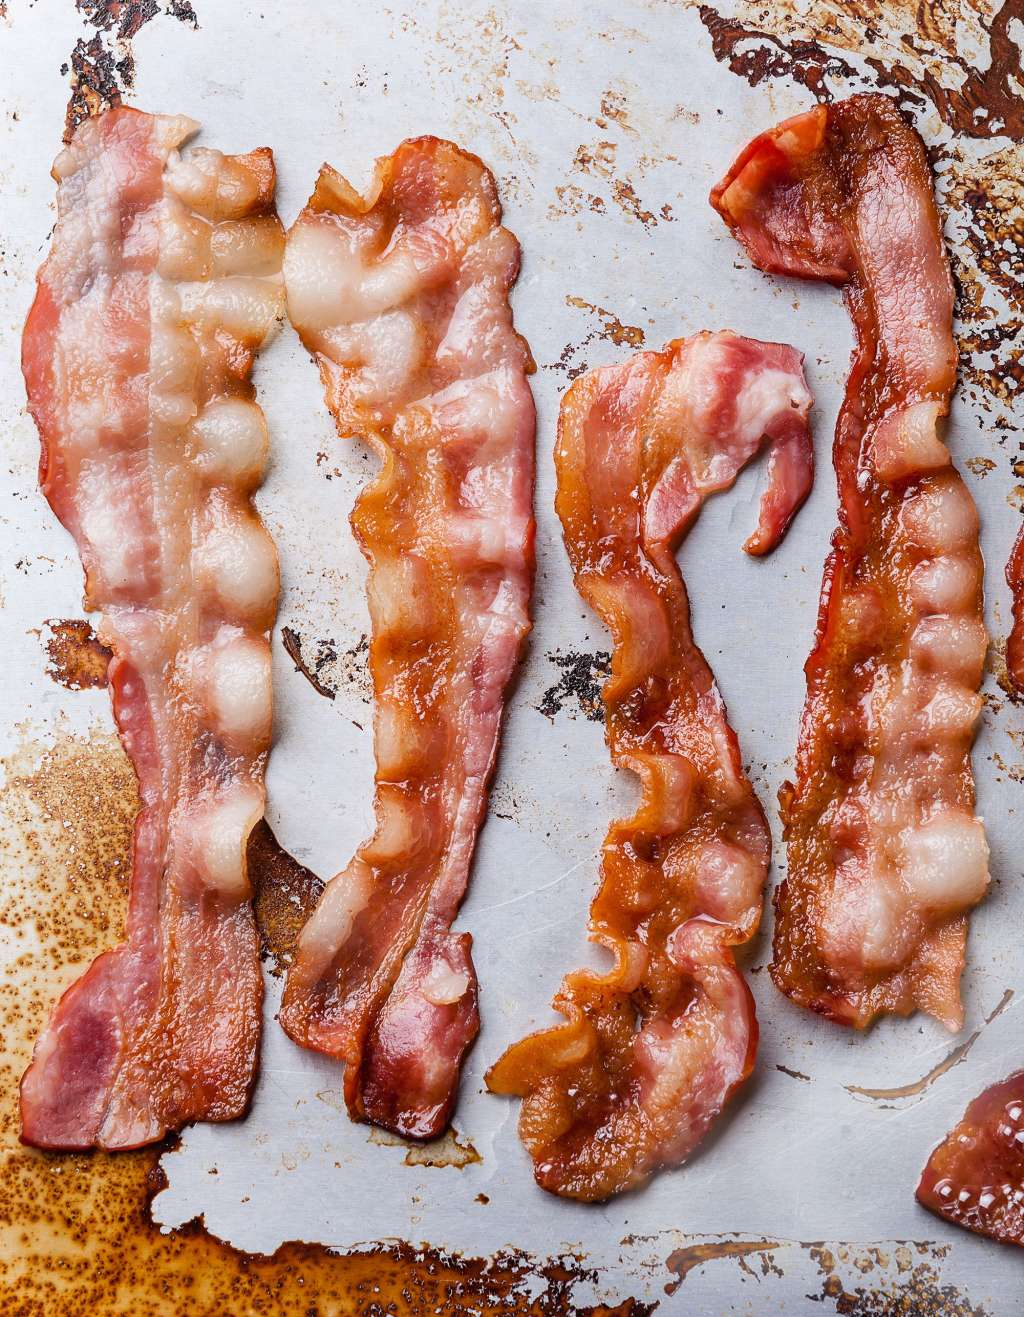 6 Important Things You Should Know About Bacon